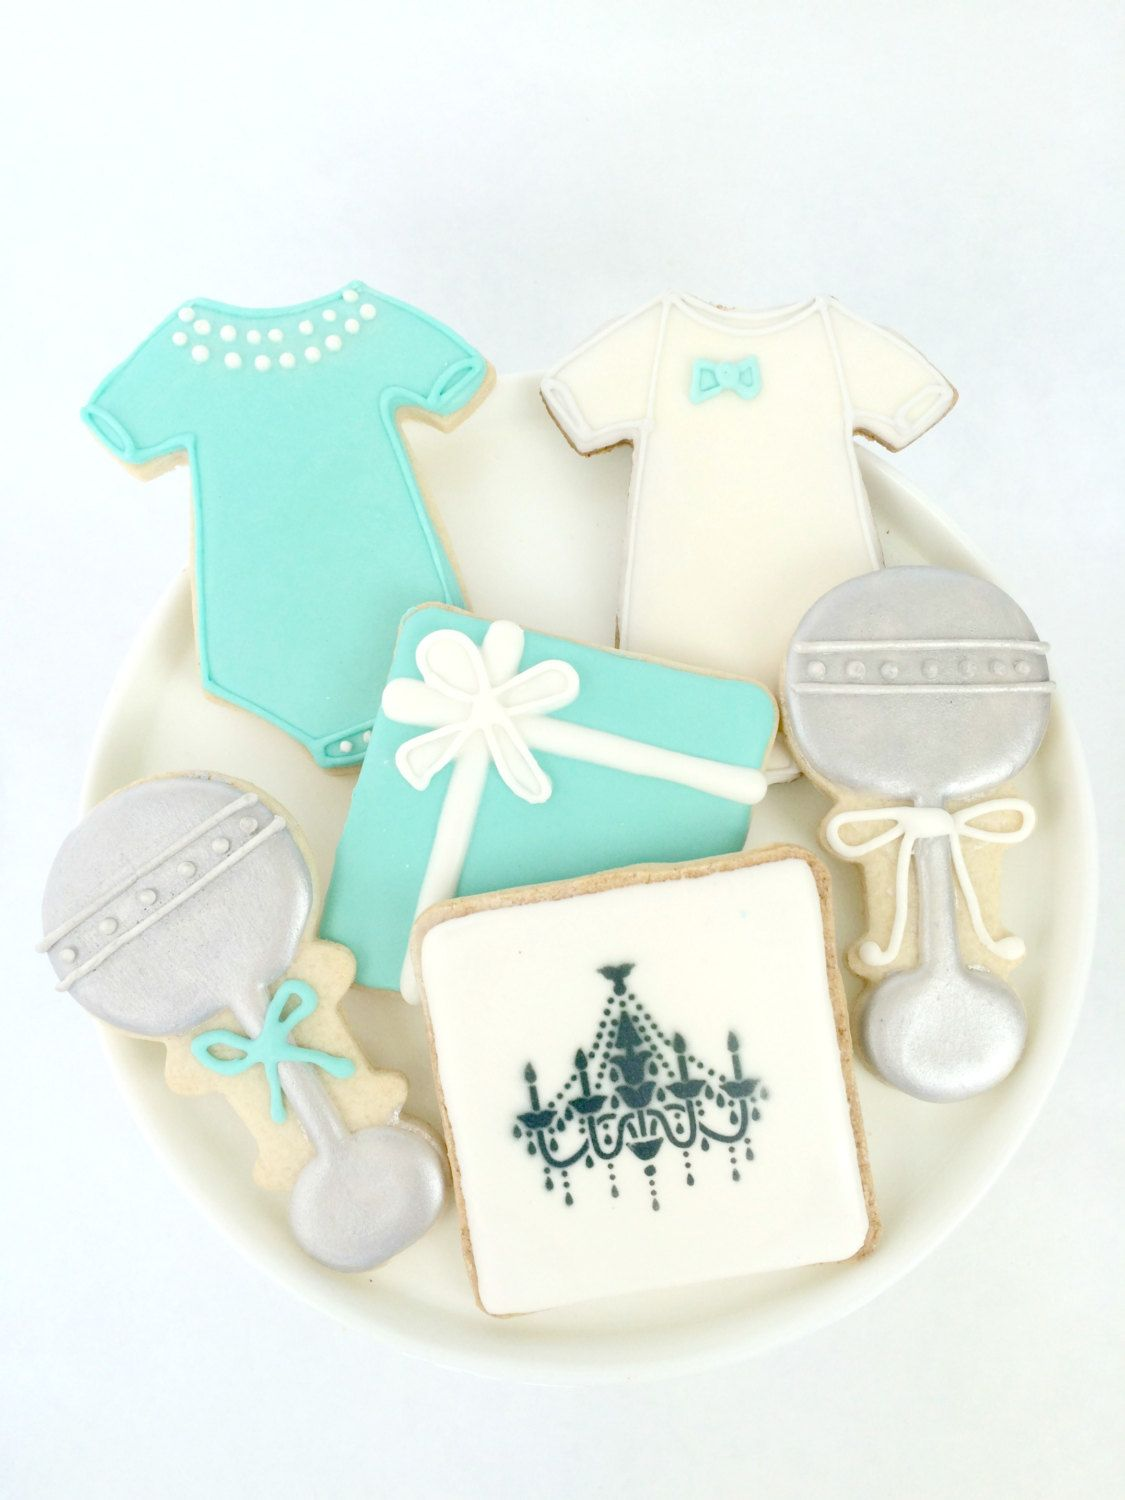 Tiffany Baby and Co. Inspired Baby Shower Cookies | Baby shower ...